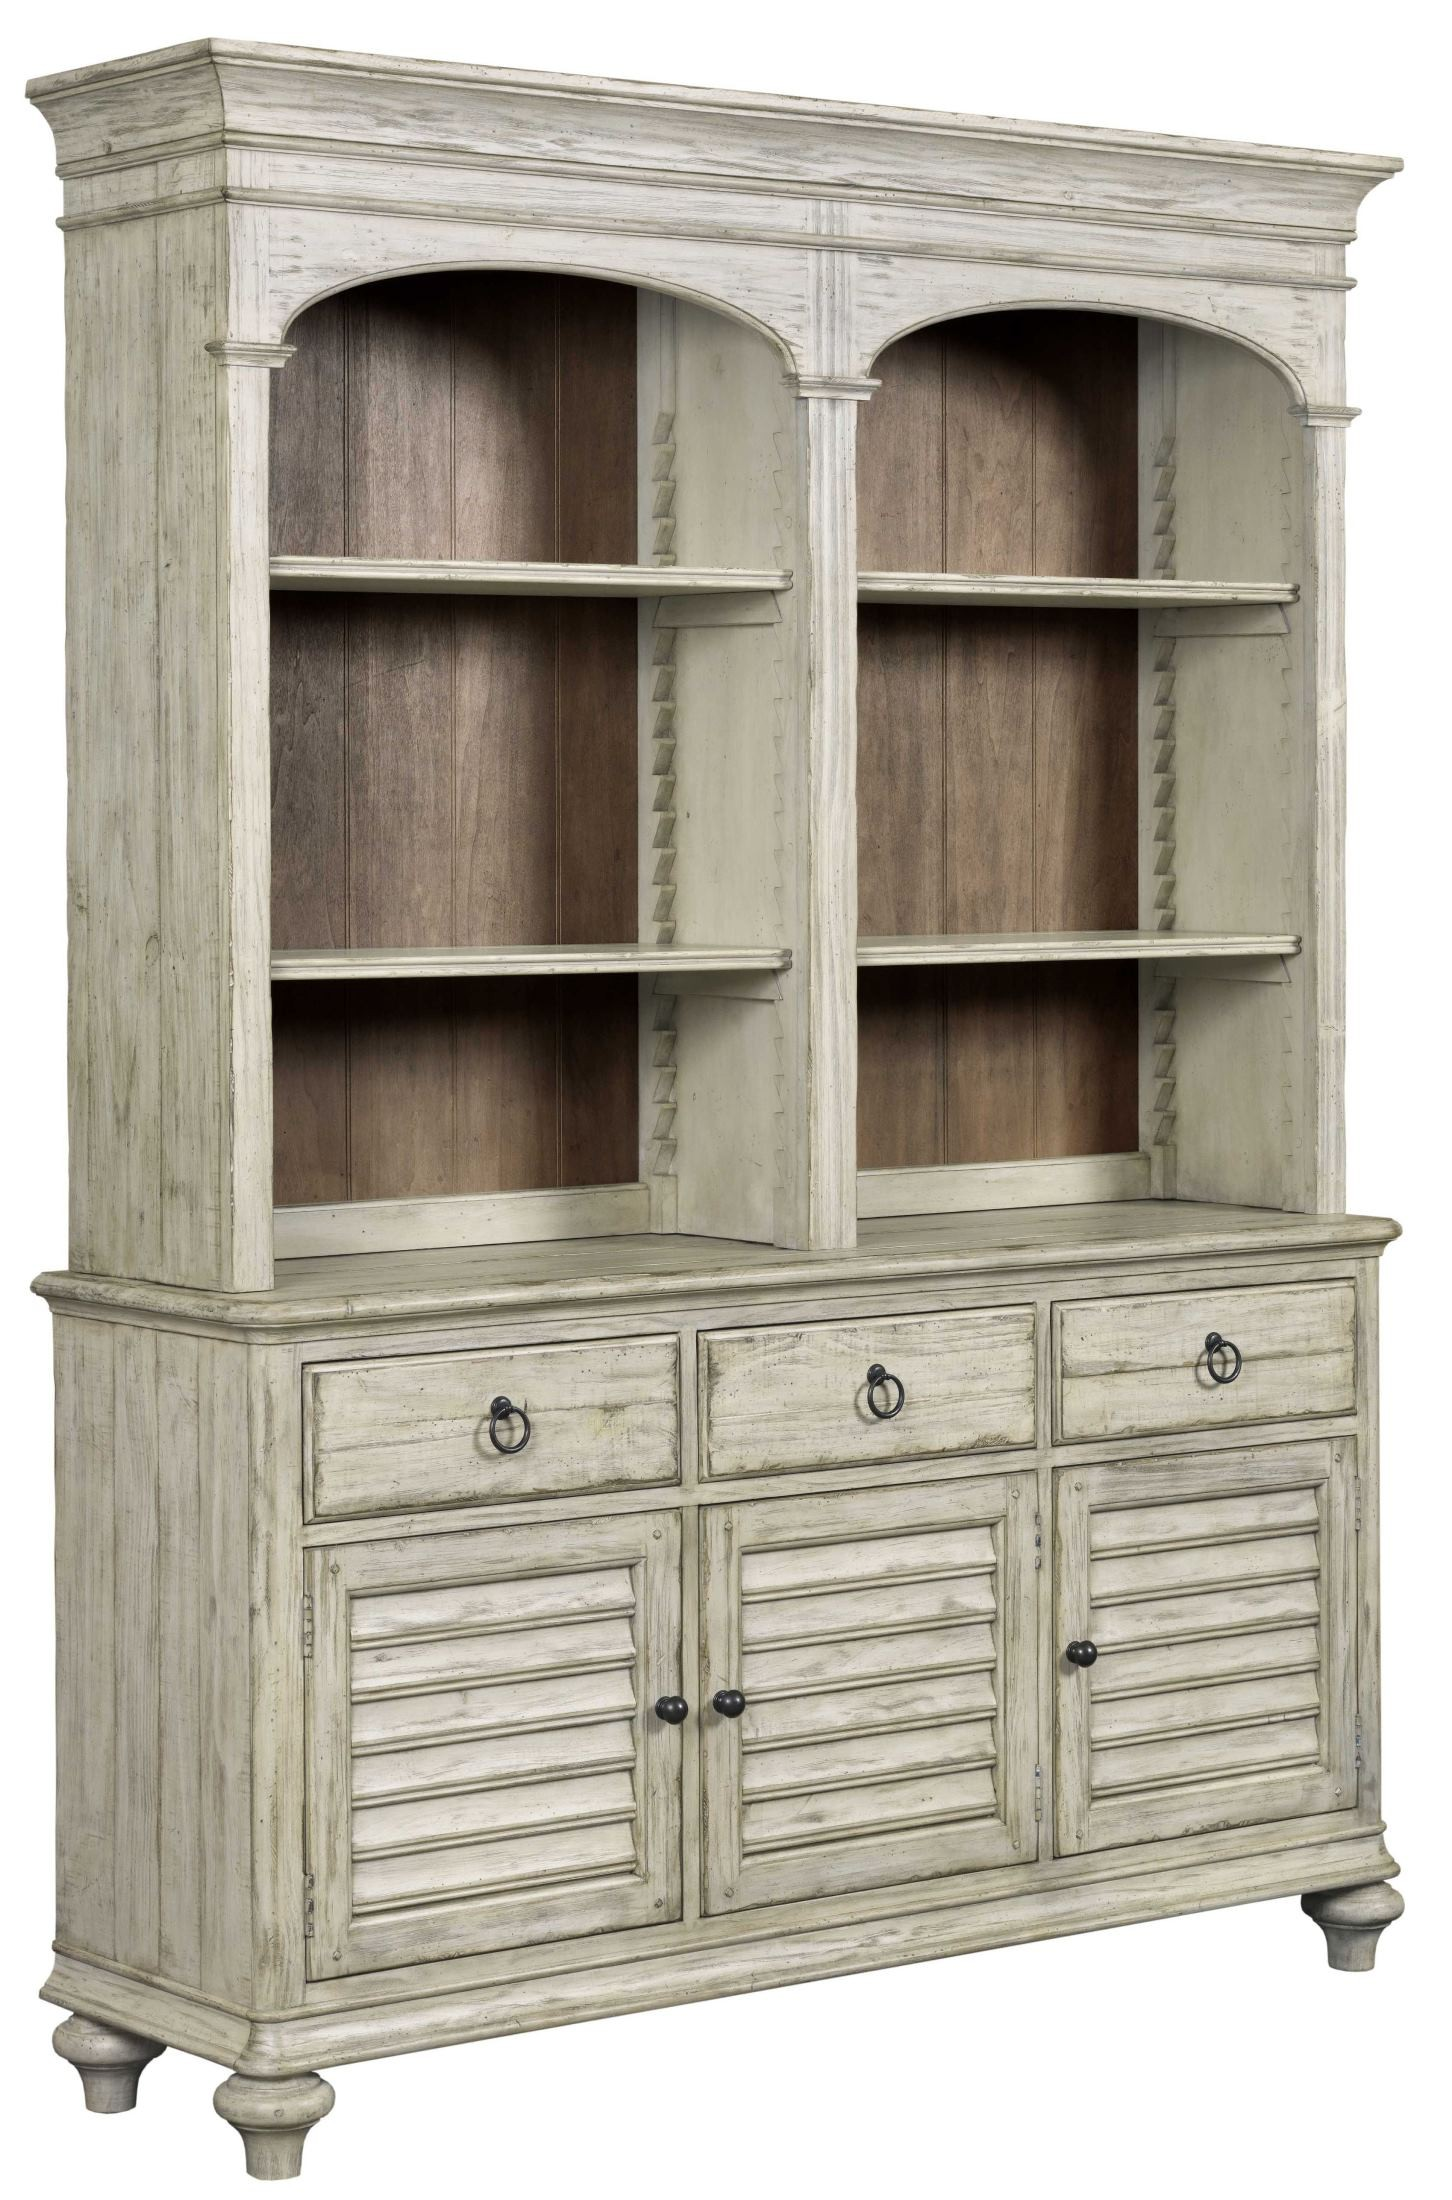 weatherford cornsilk hastings open buffet with hutch from